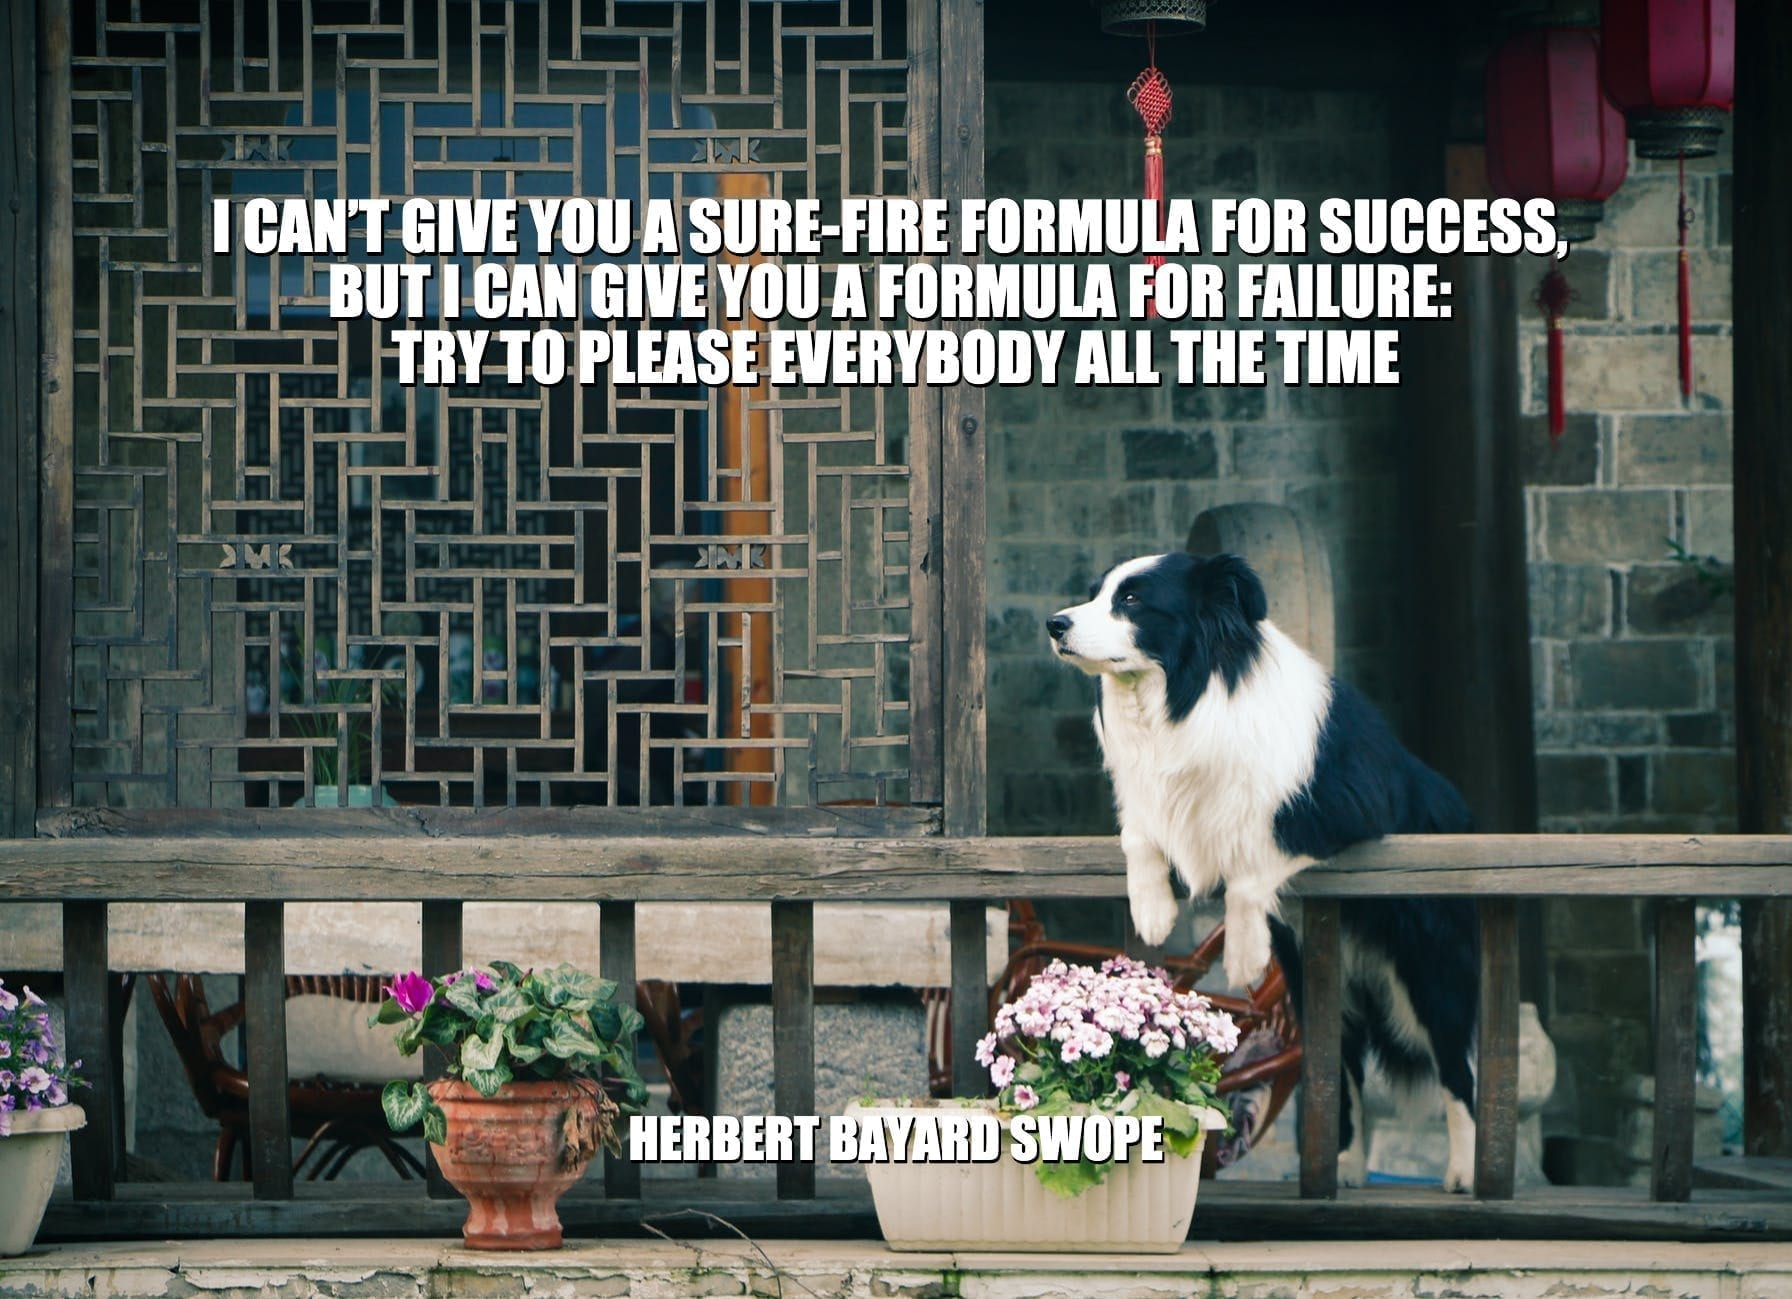 Daily Quotes: I Can't Give You A Sure-Fire Formula For Success, But I Can Give You A Formula For Failure: Try To Please Everybody All The Time petworldglobal.com